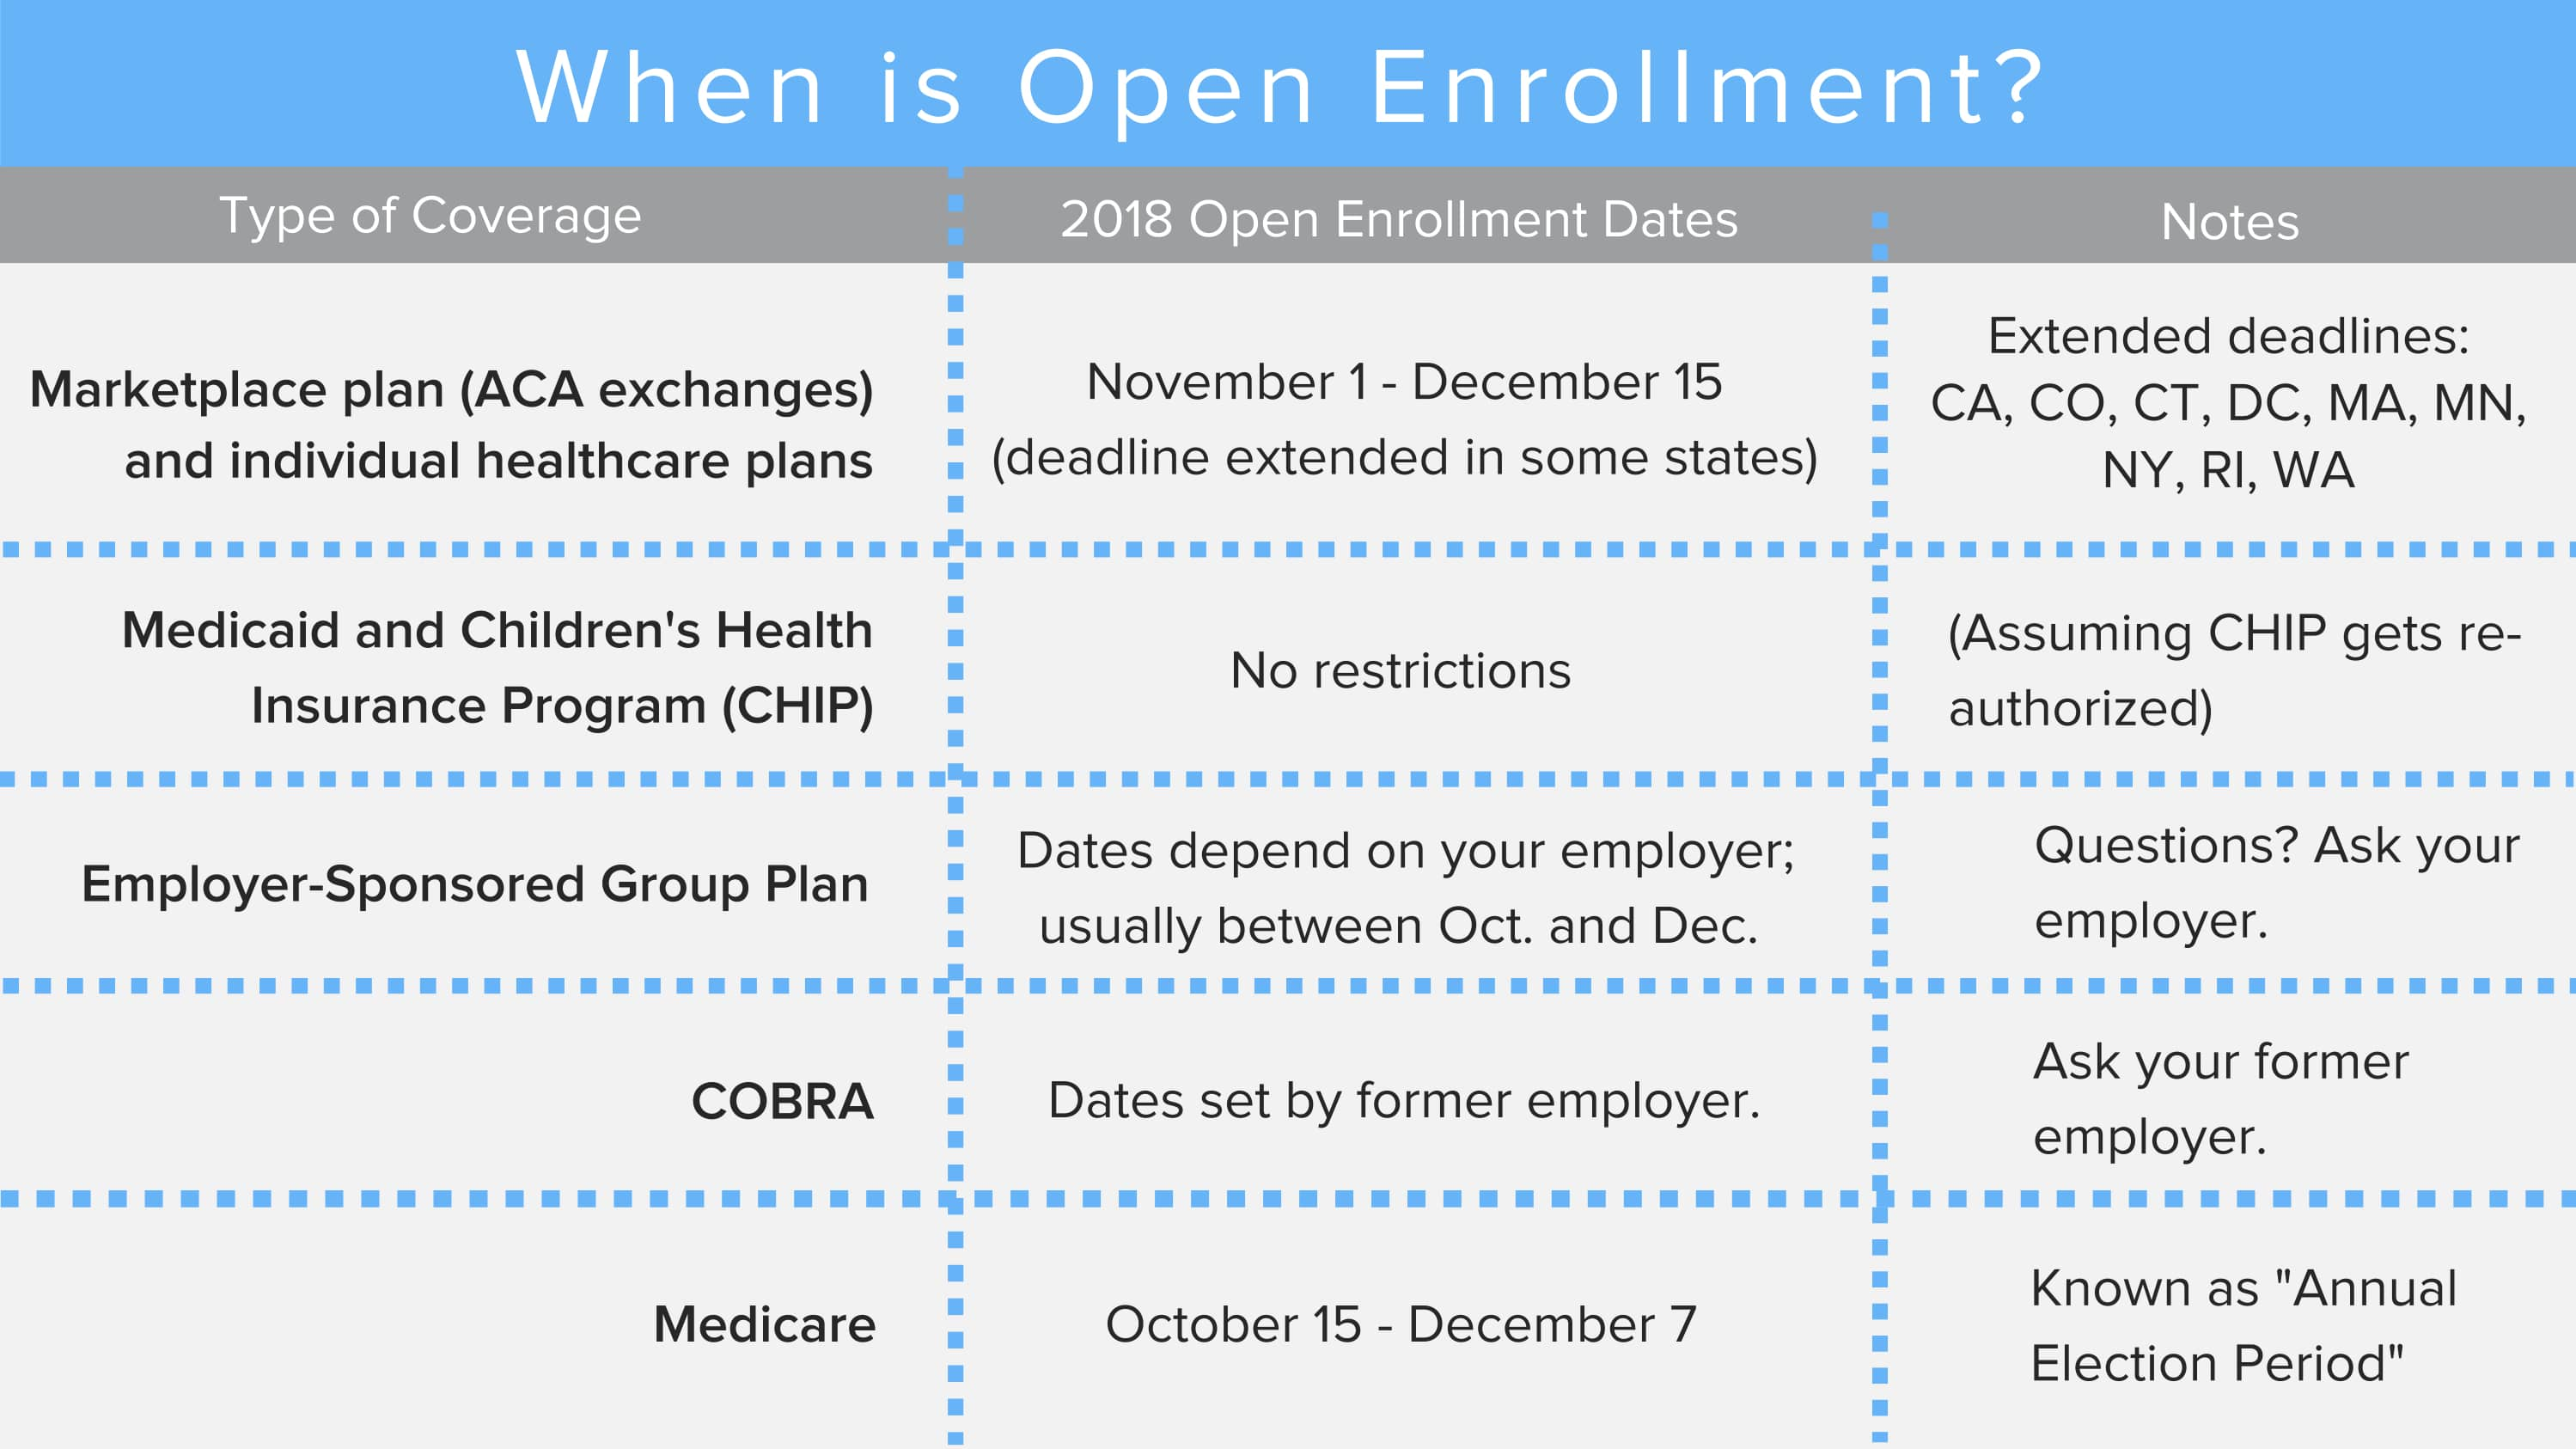 Do You Need to Do Anything During This Health Insurance Open Enrollment Period? | HealthCare.com